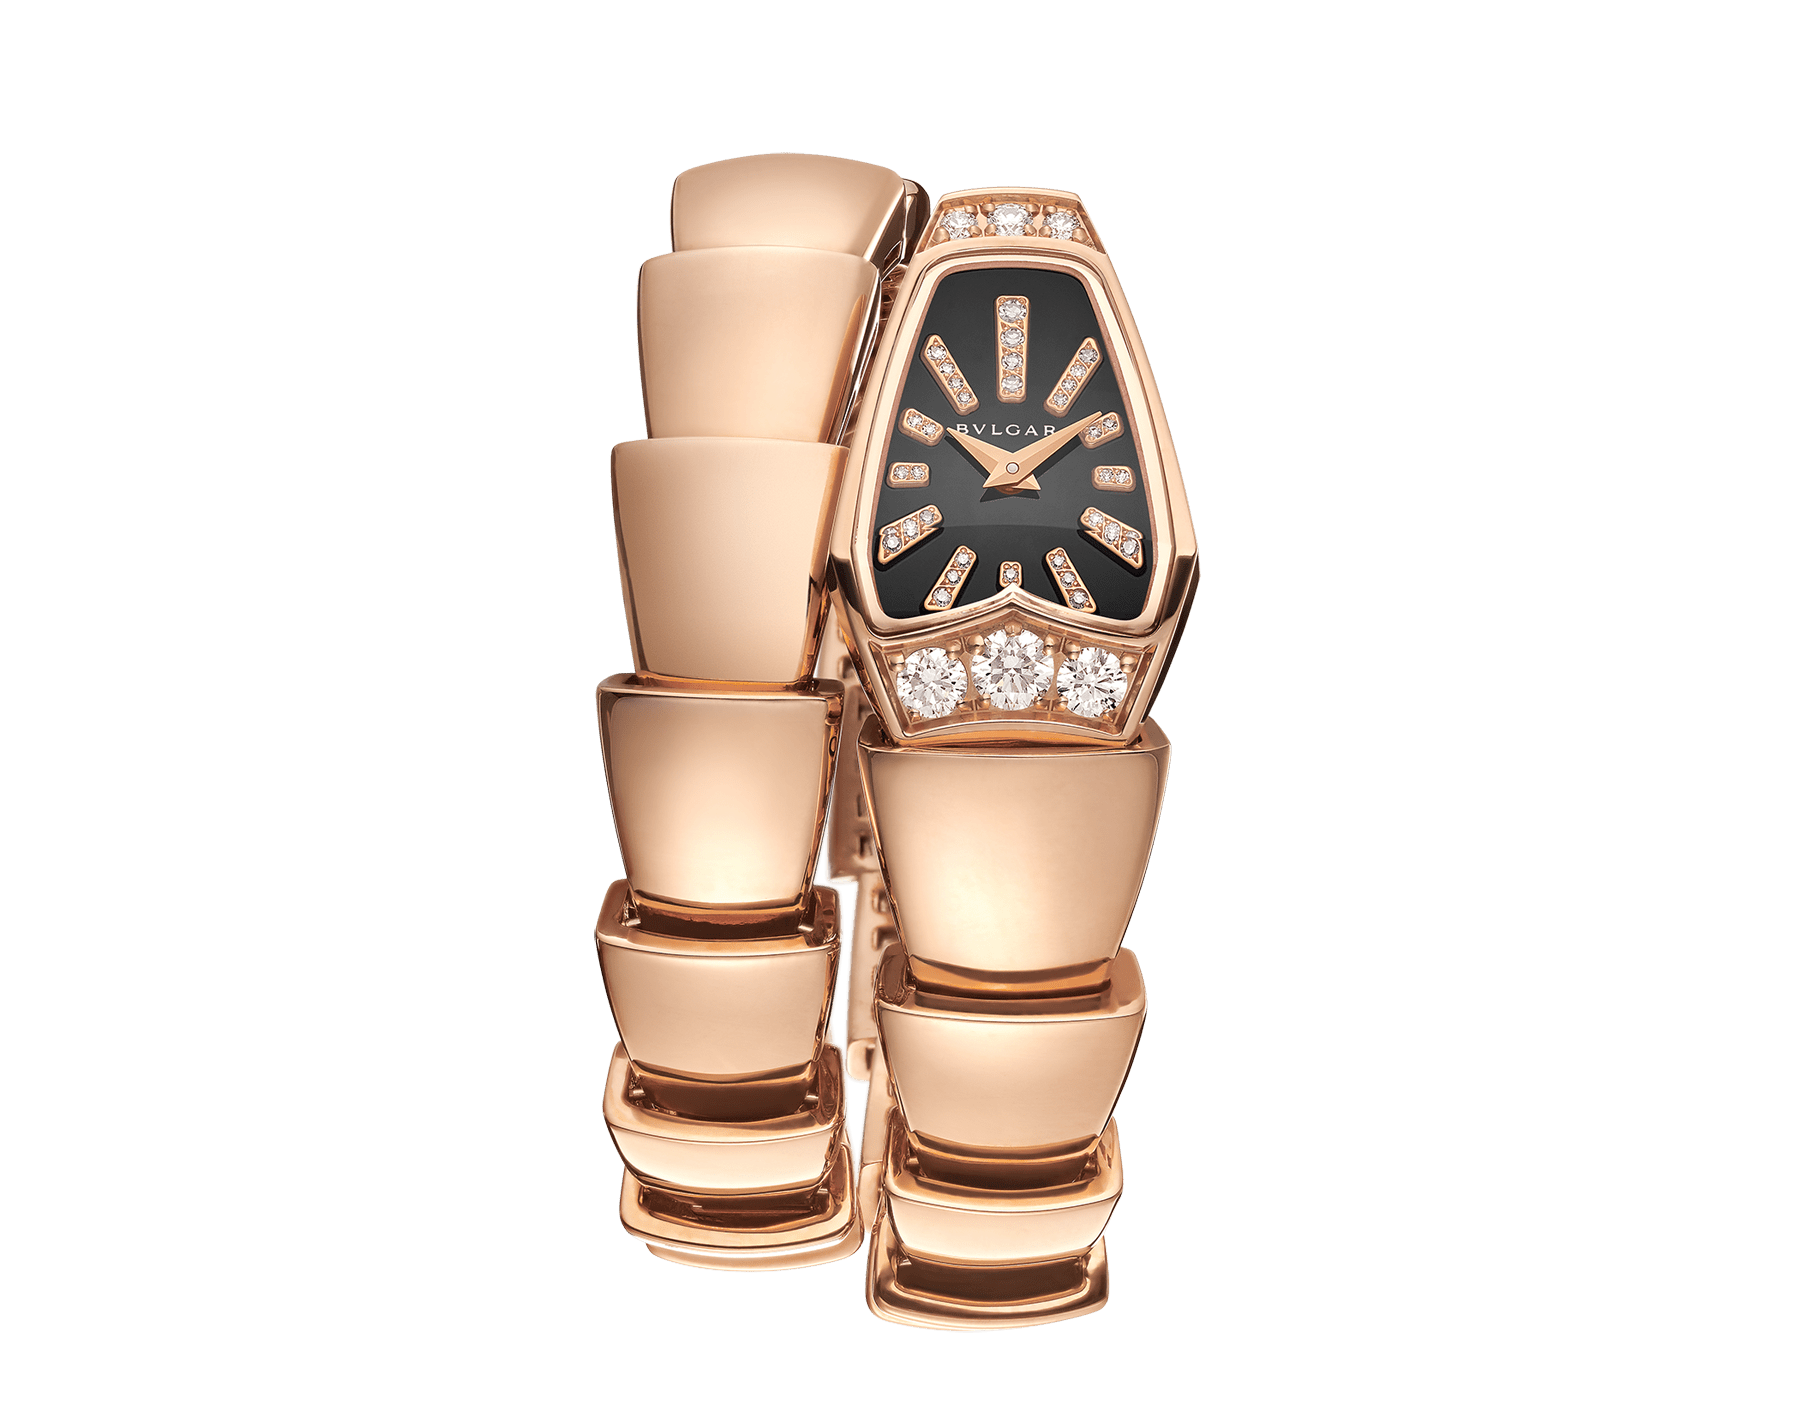 Serpenti Jewellery Watch with 18 kt rose gold case set with brilliant cut diamonds, black sapphire crystal dial, diamond indexes and 18 kt rose gold single spiral bracelet. 101788 image 1